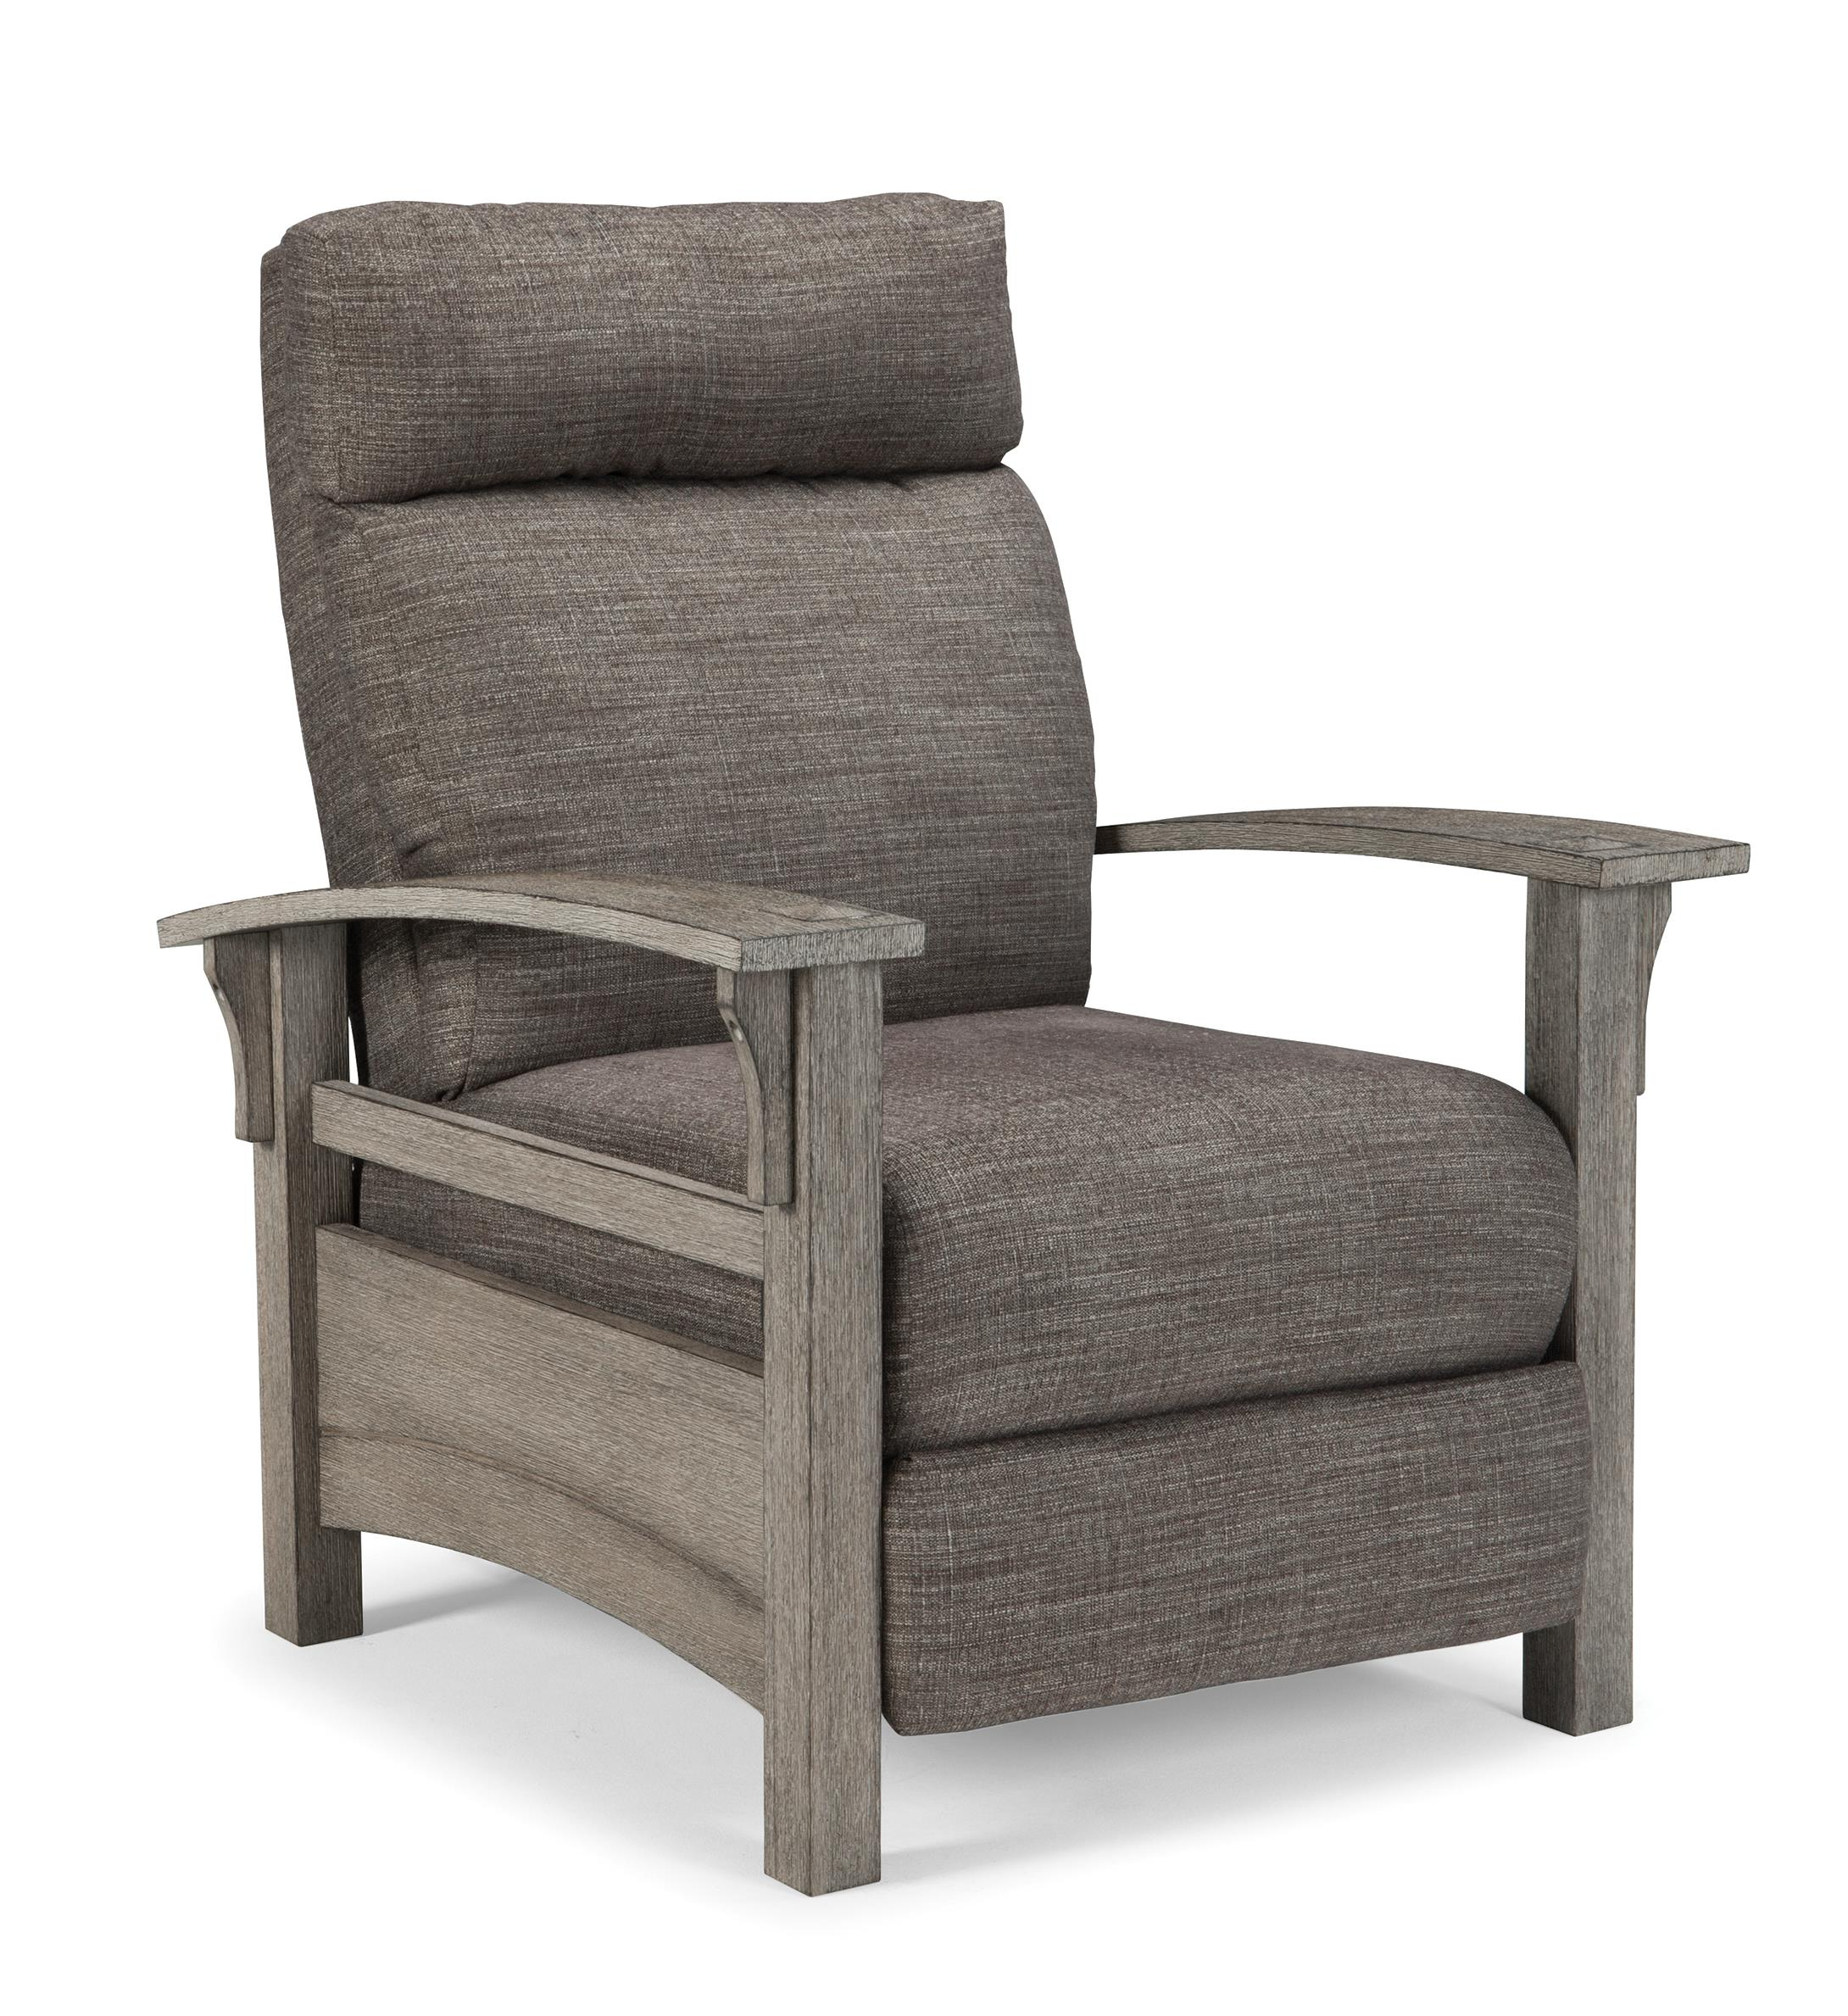 Best home furnishings recliners pushback 2l10r graysen for Best furniture for home